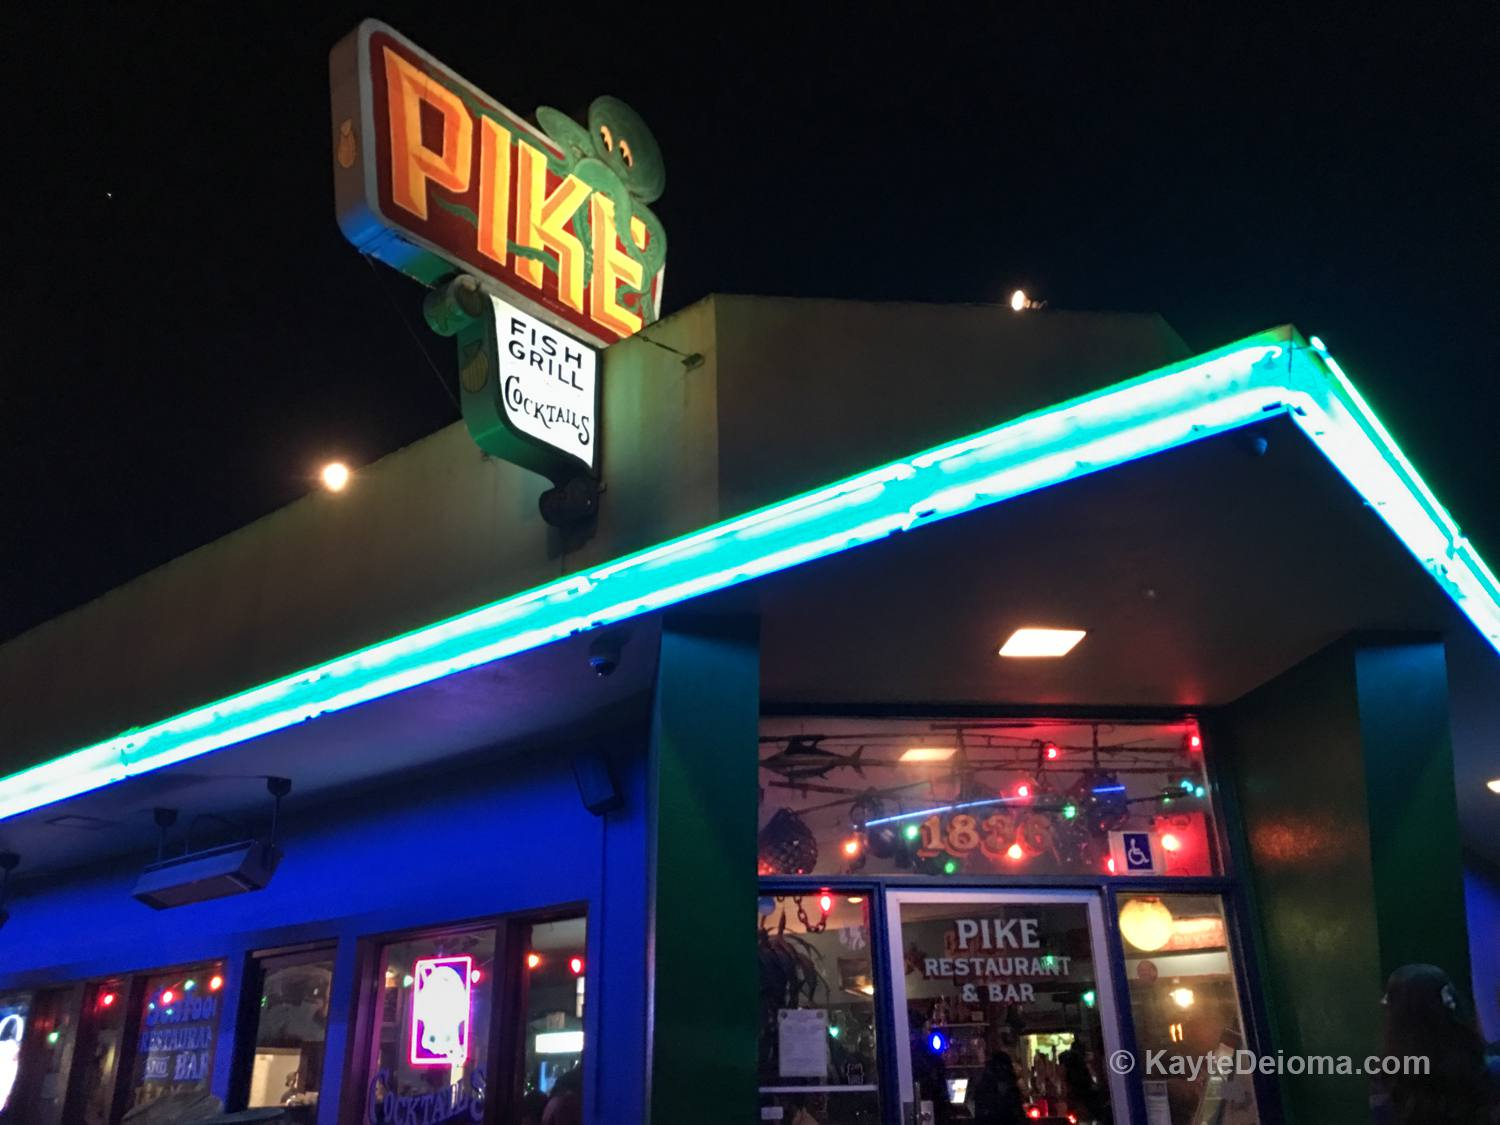 Pike Fish Grill & Cocktails on 4th Street in Long Beach